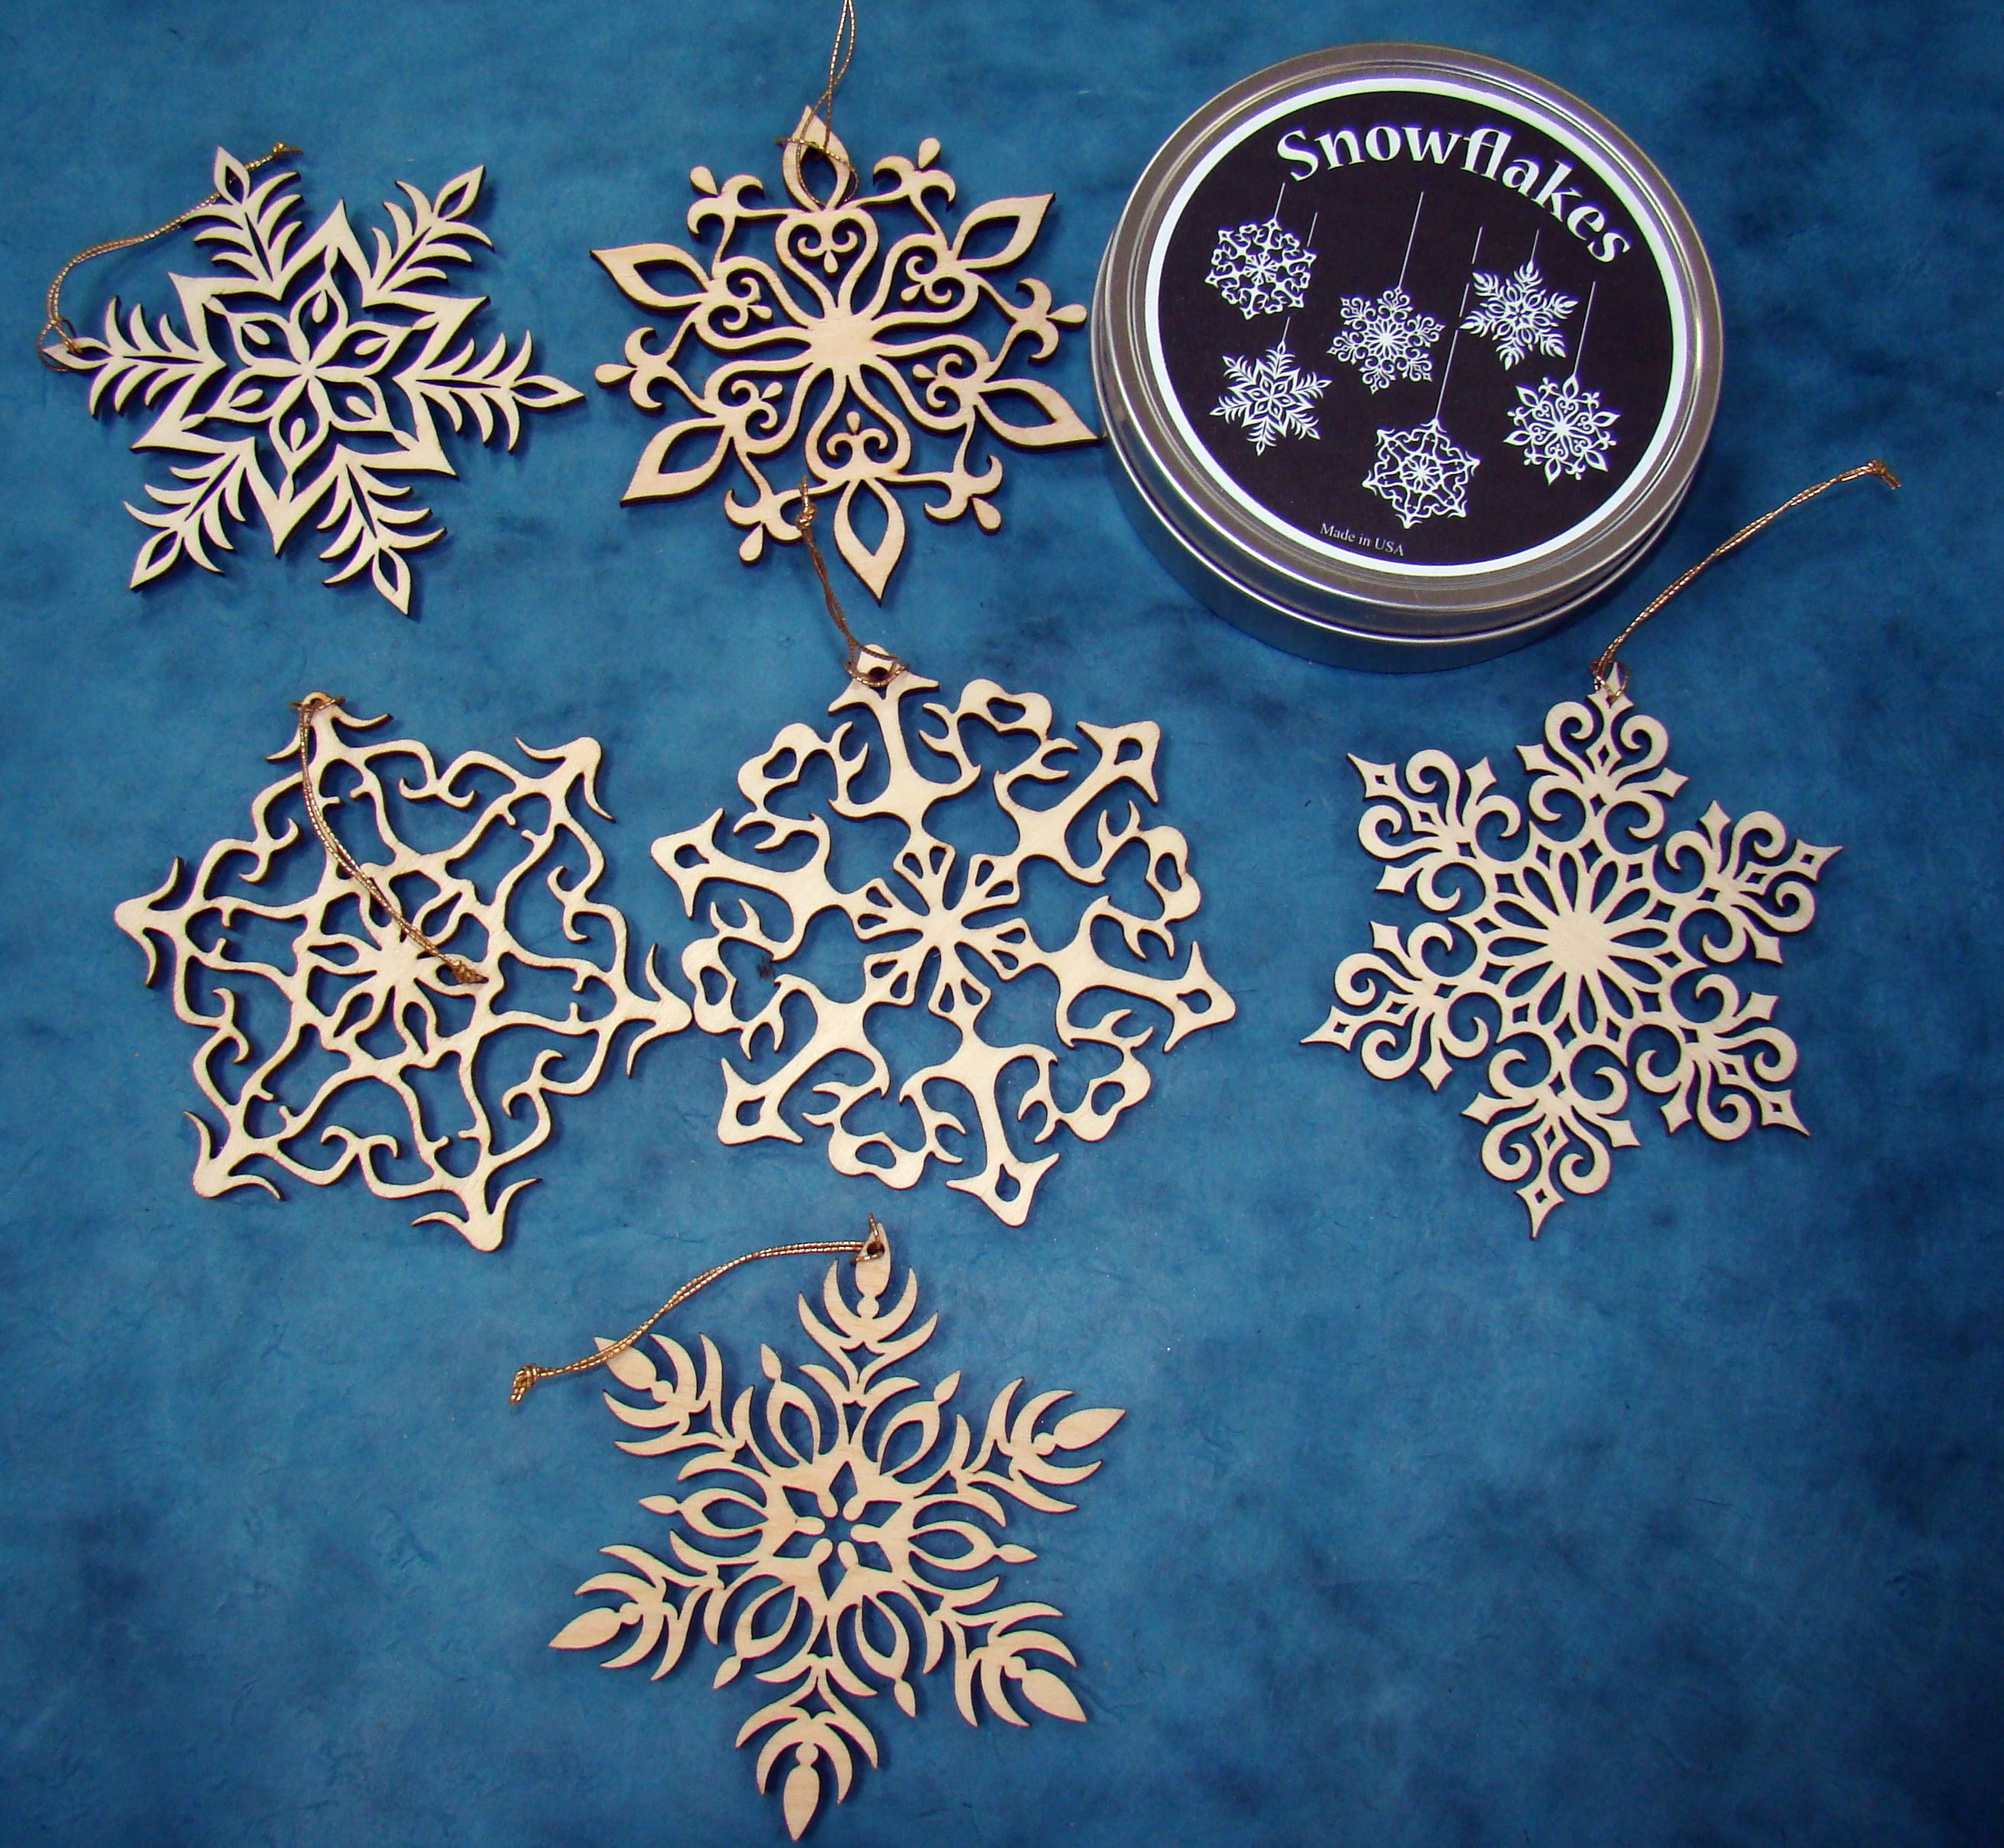 Snowflakes ornaments - Adorn Your Tree With The Delicate Laser Cut Snowflakes Cut From Maple Wood And Clear Finished